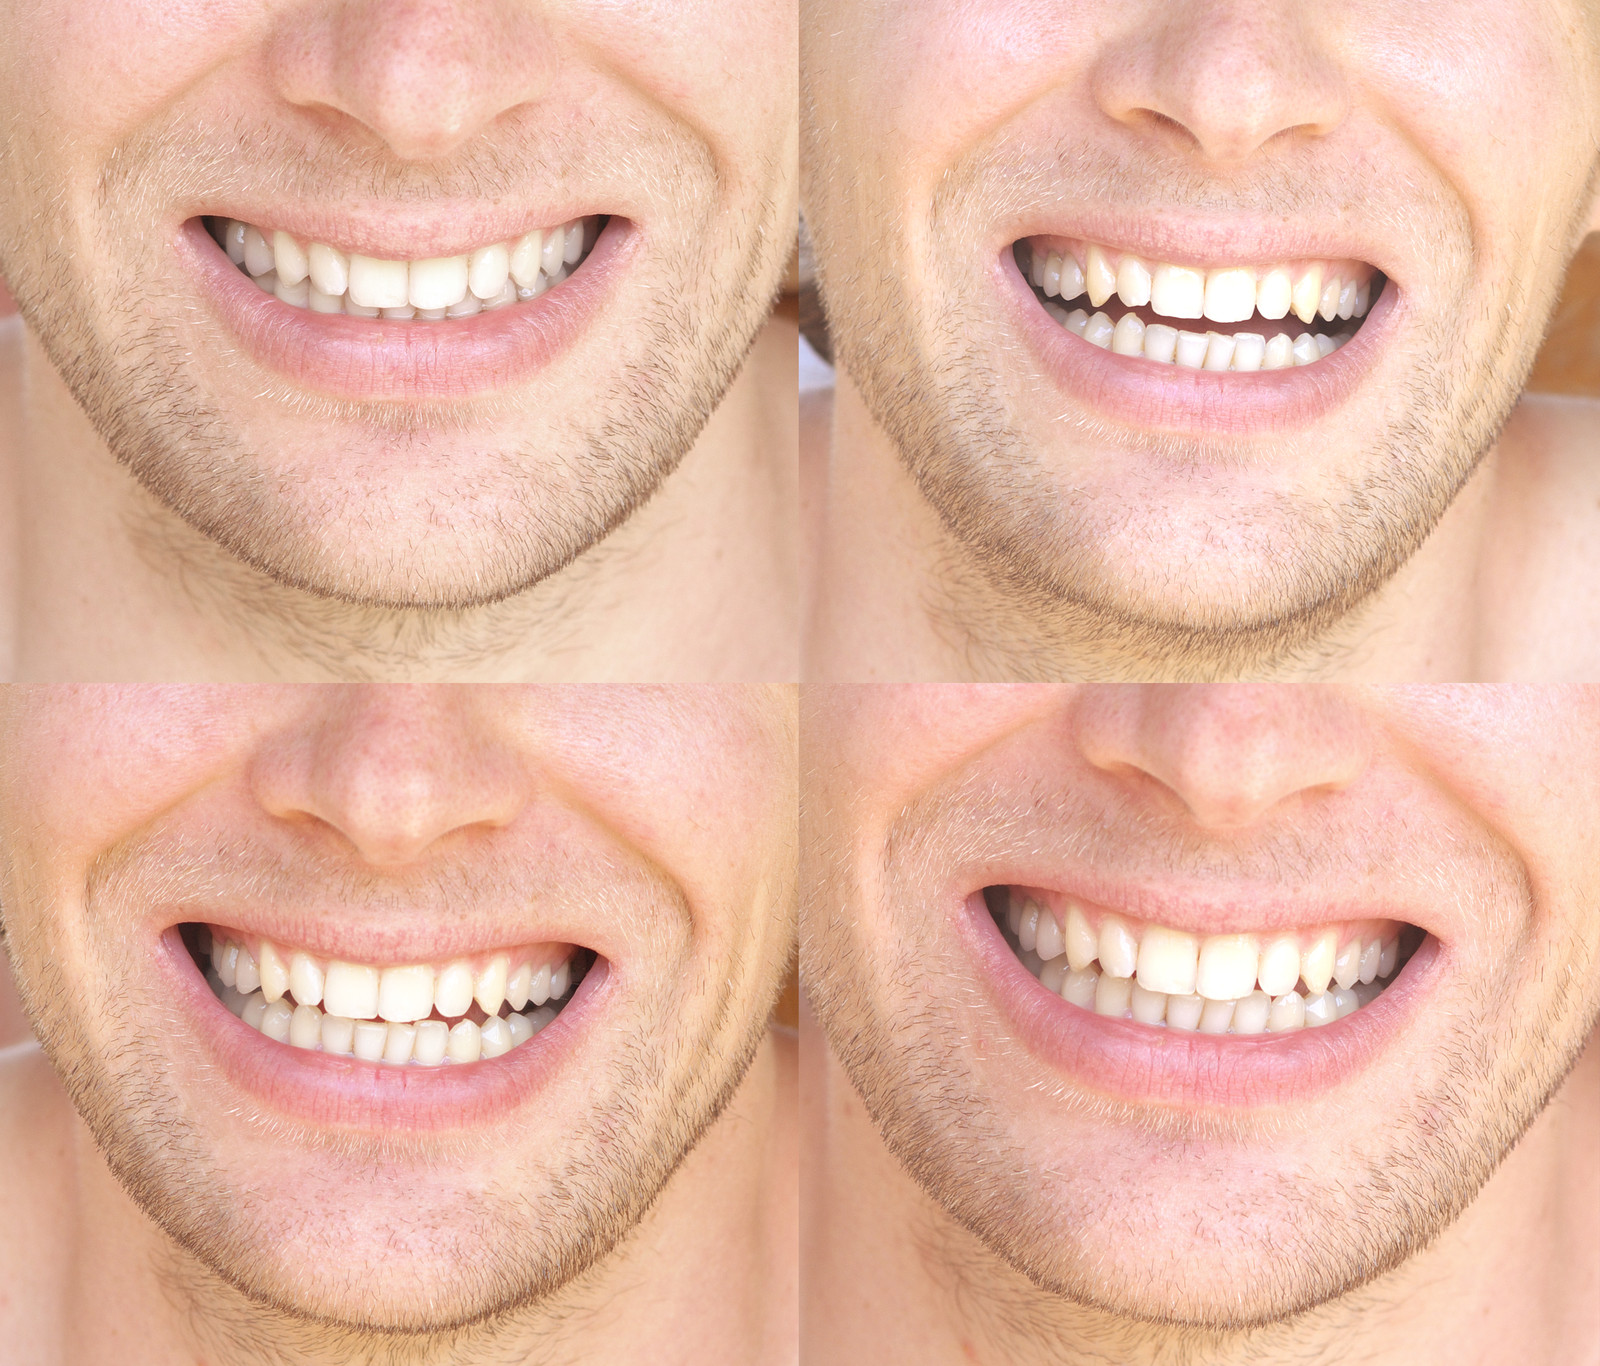 Teeth Whitening For Men From Idol White - MensBeat